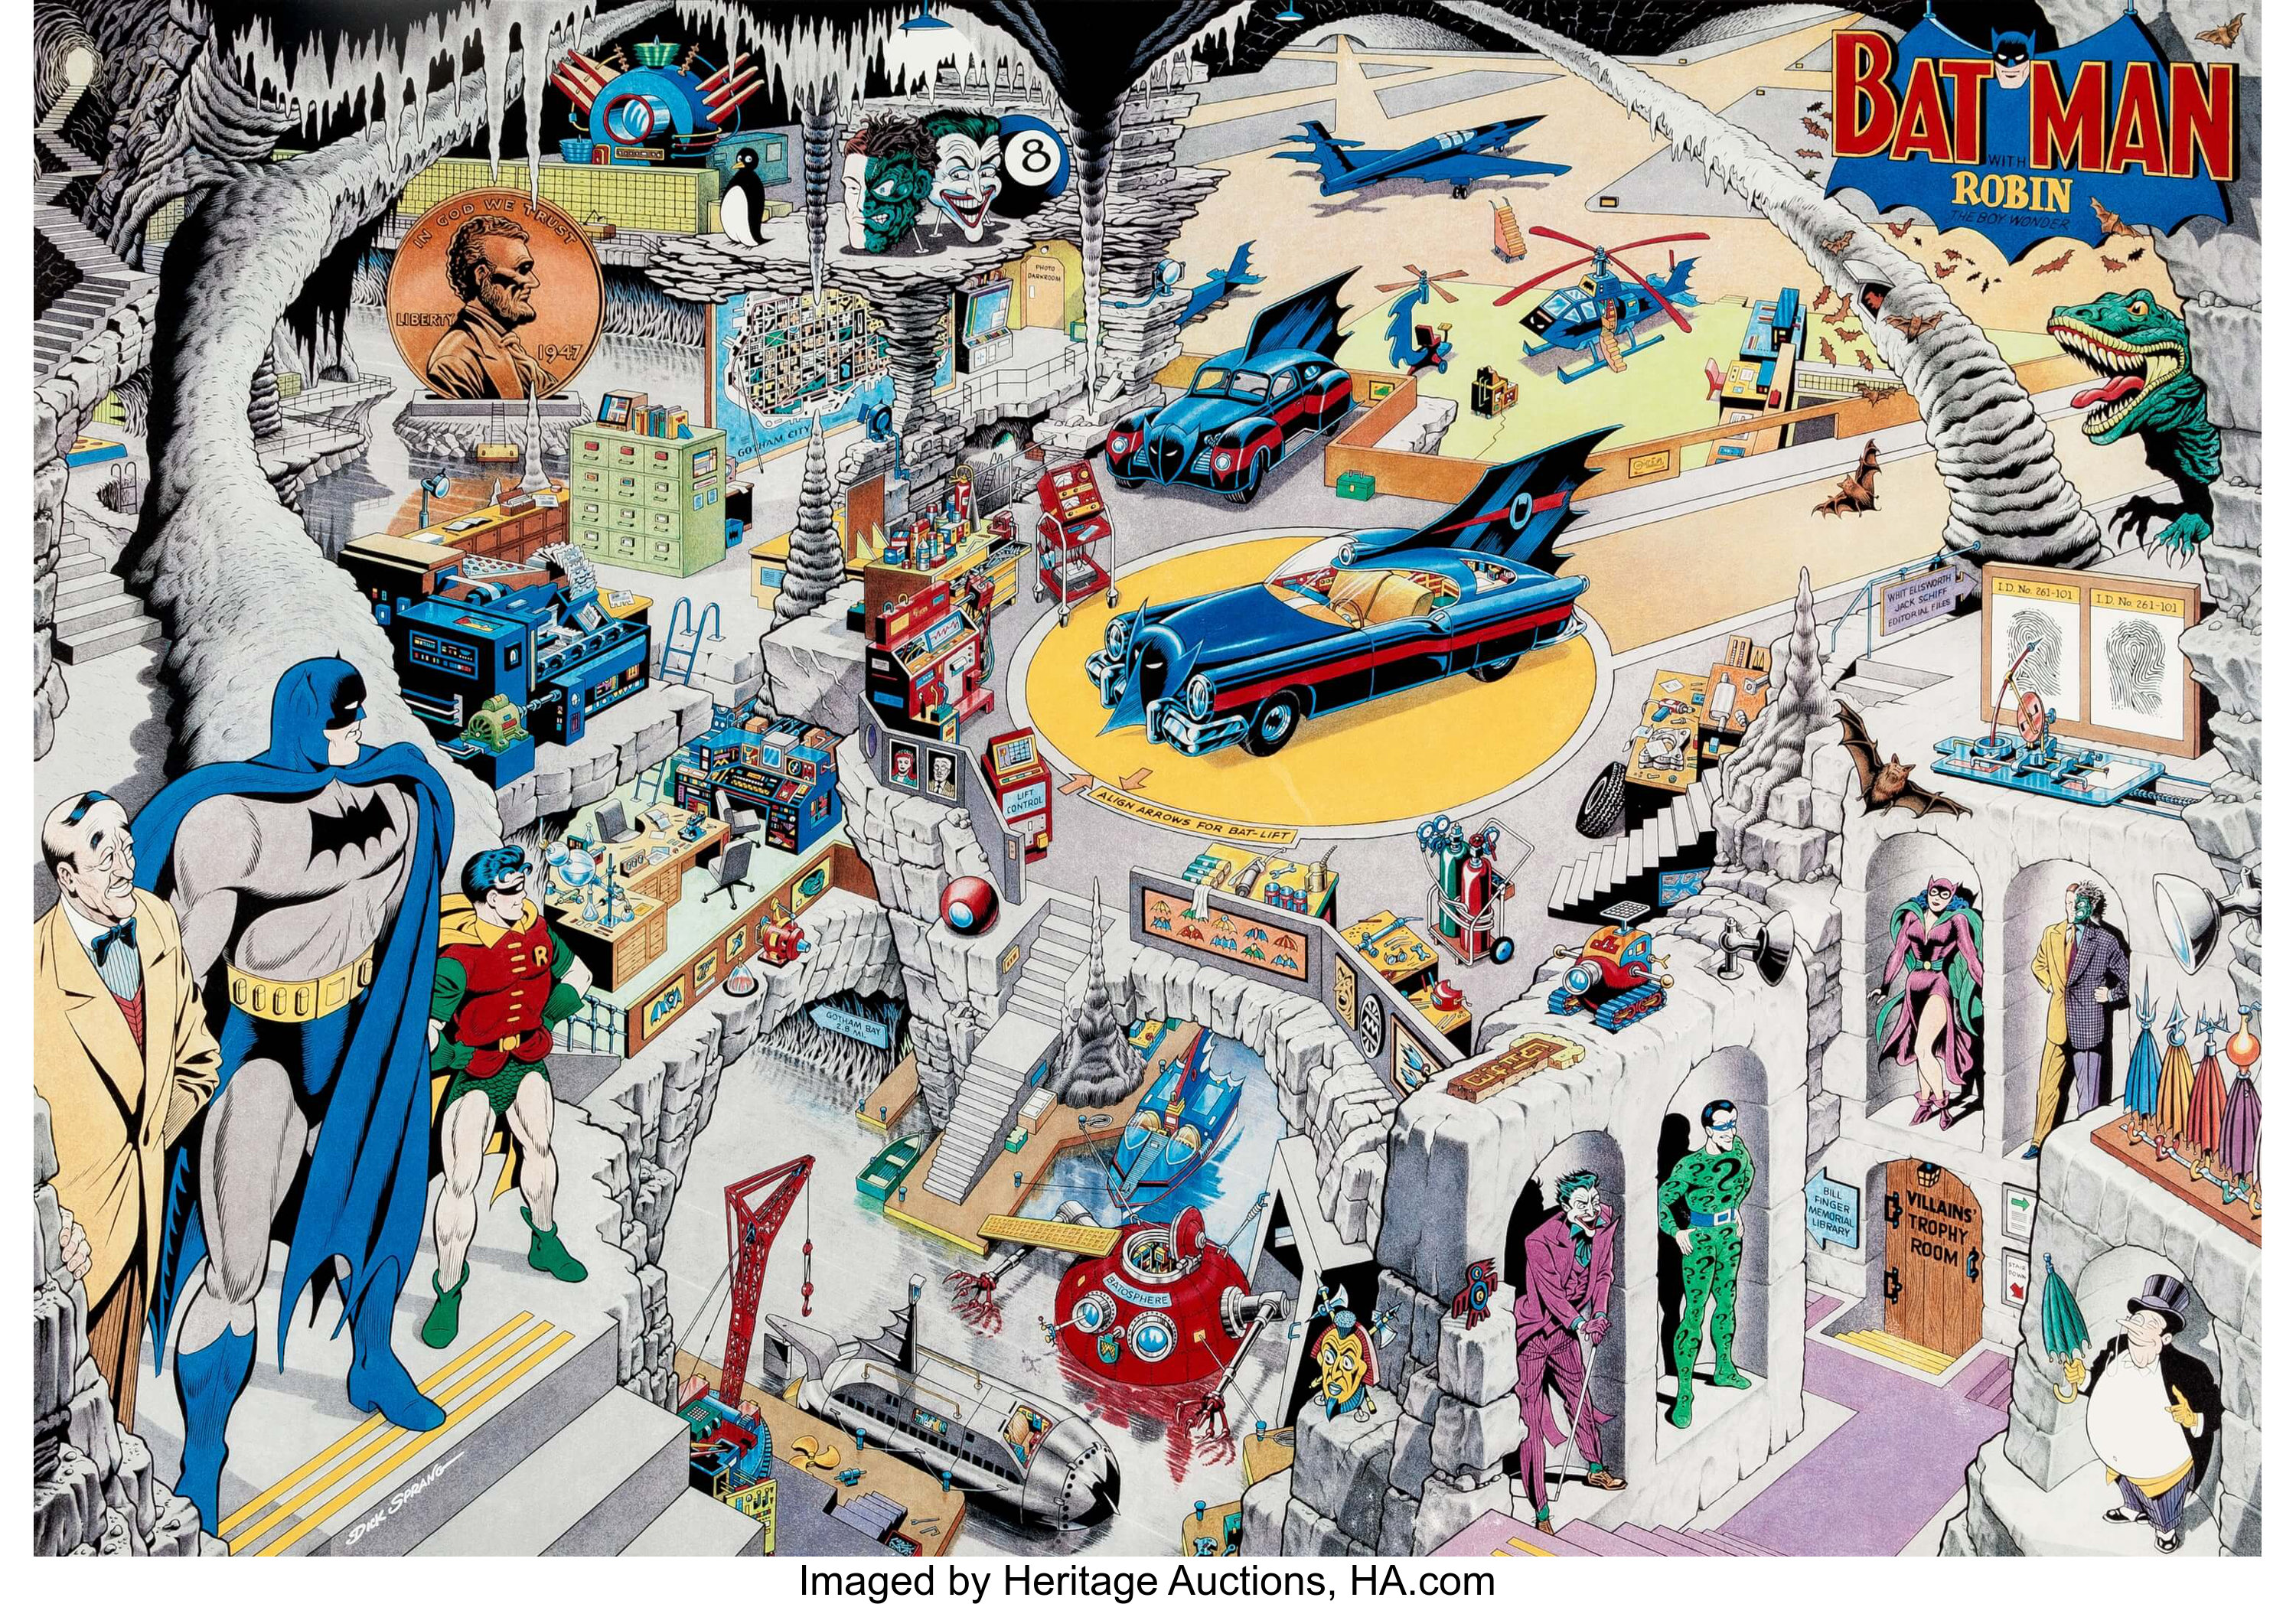 Dick Sprang The Secrets Of The Batcave Limited Silver Edition Print Lot 12768 Heritage Auctions